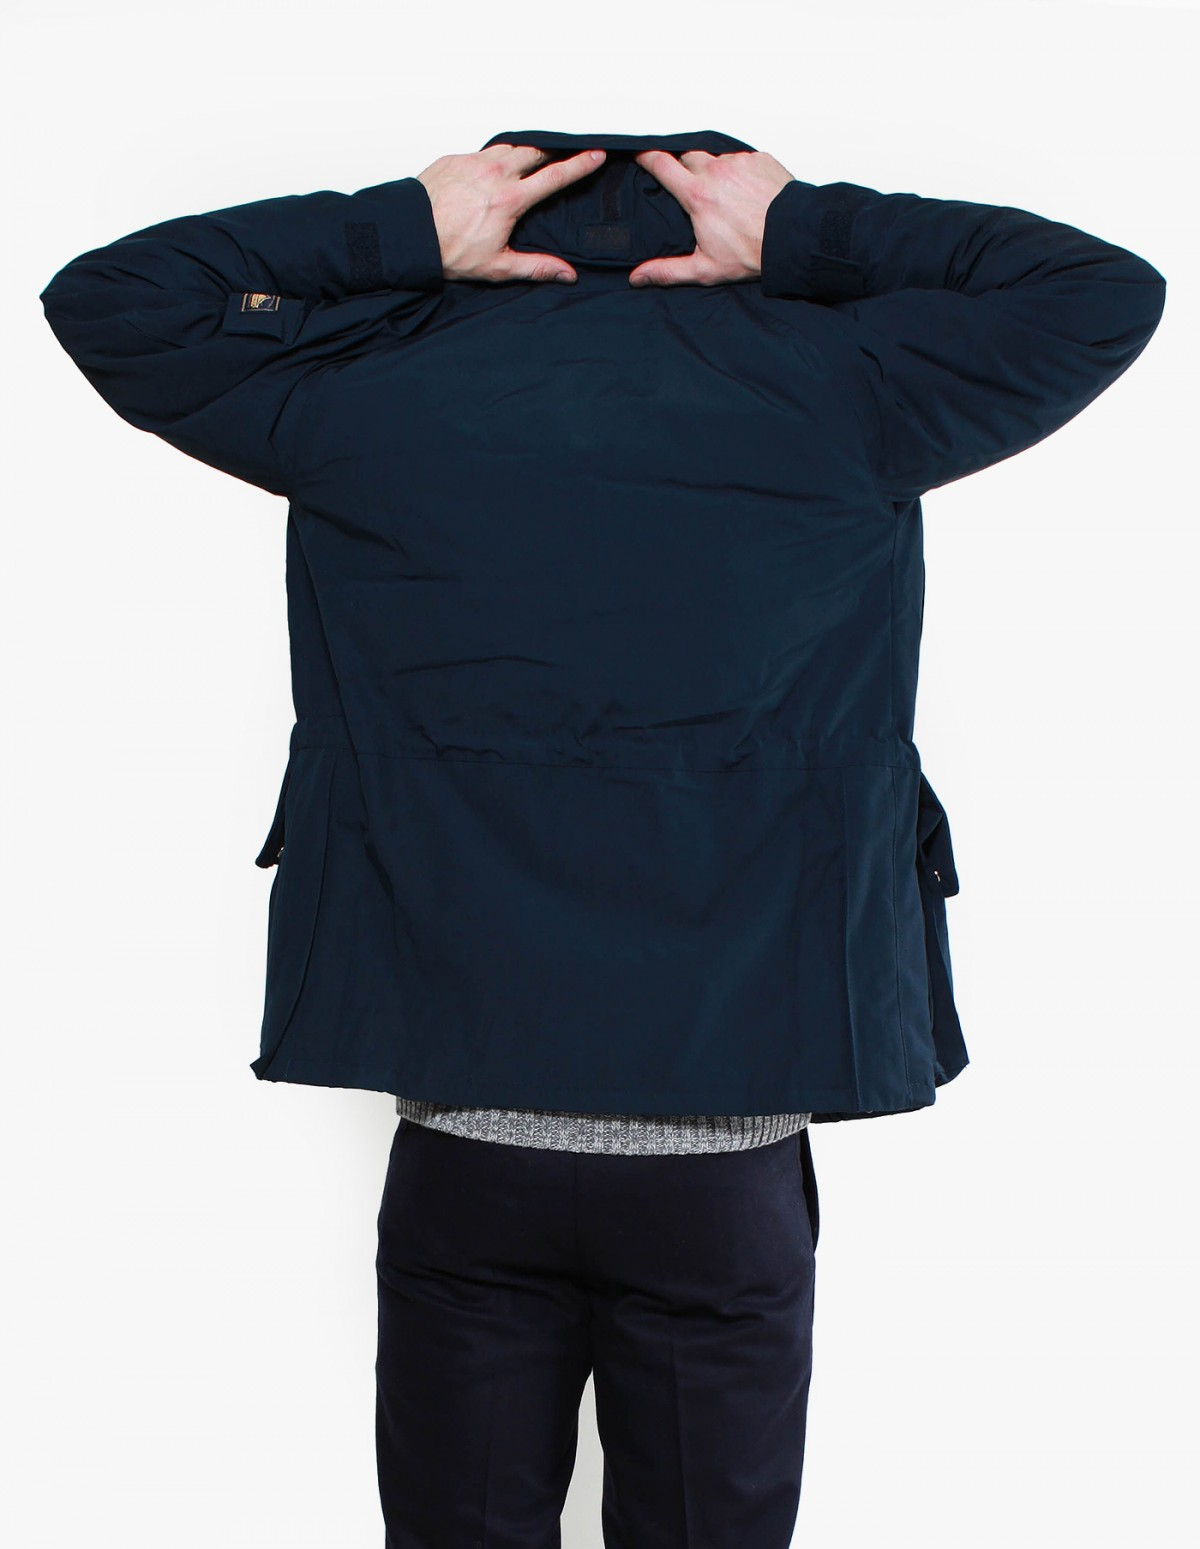 Penfield Holgate Jacket in Navy